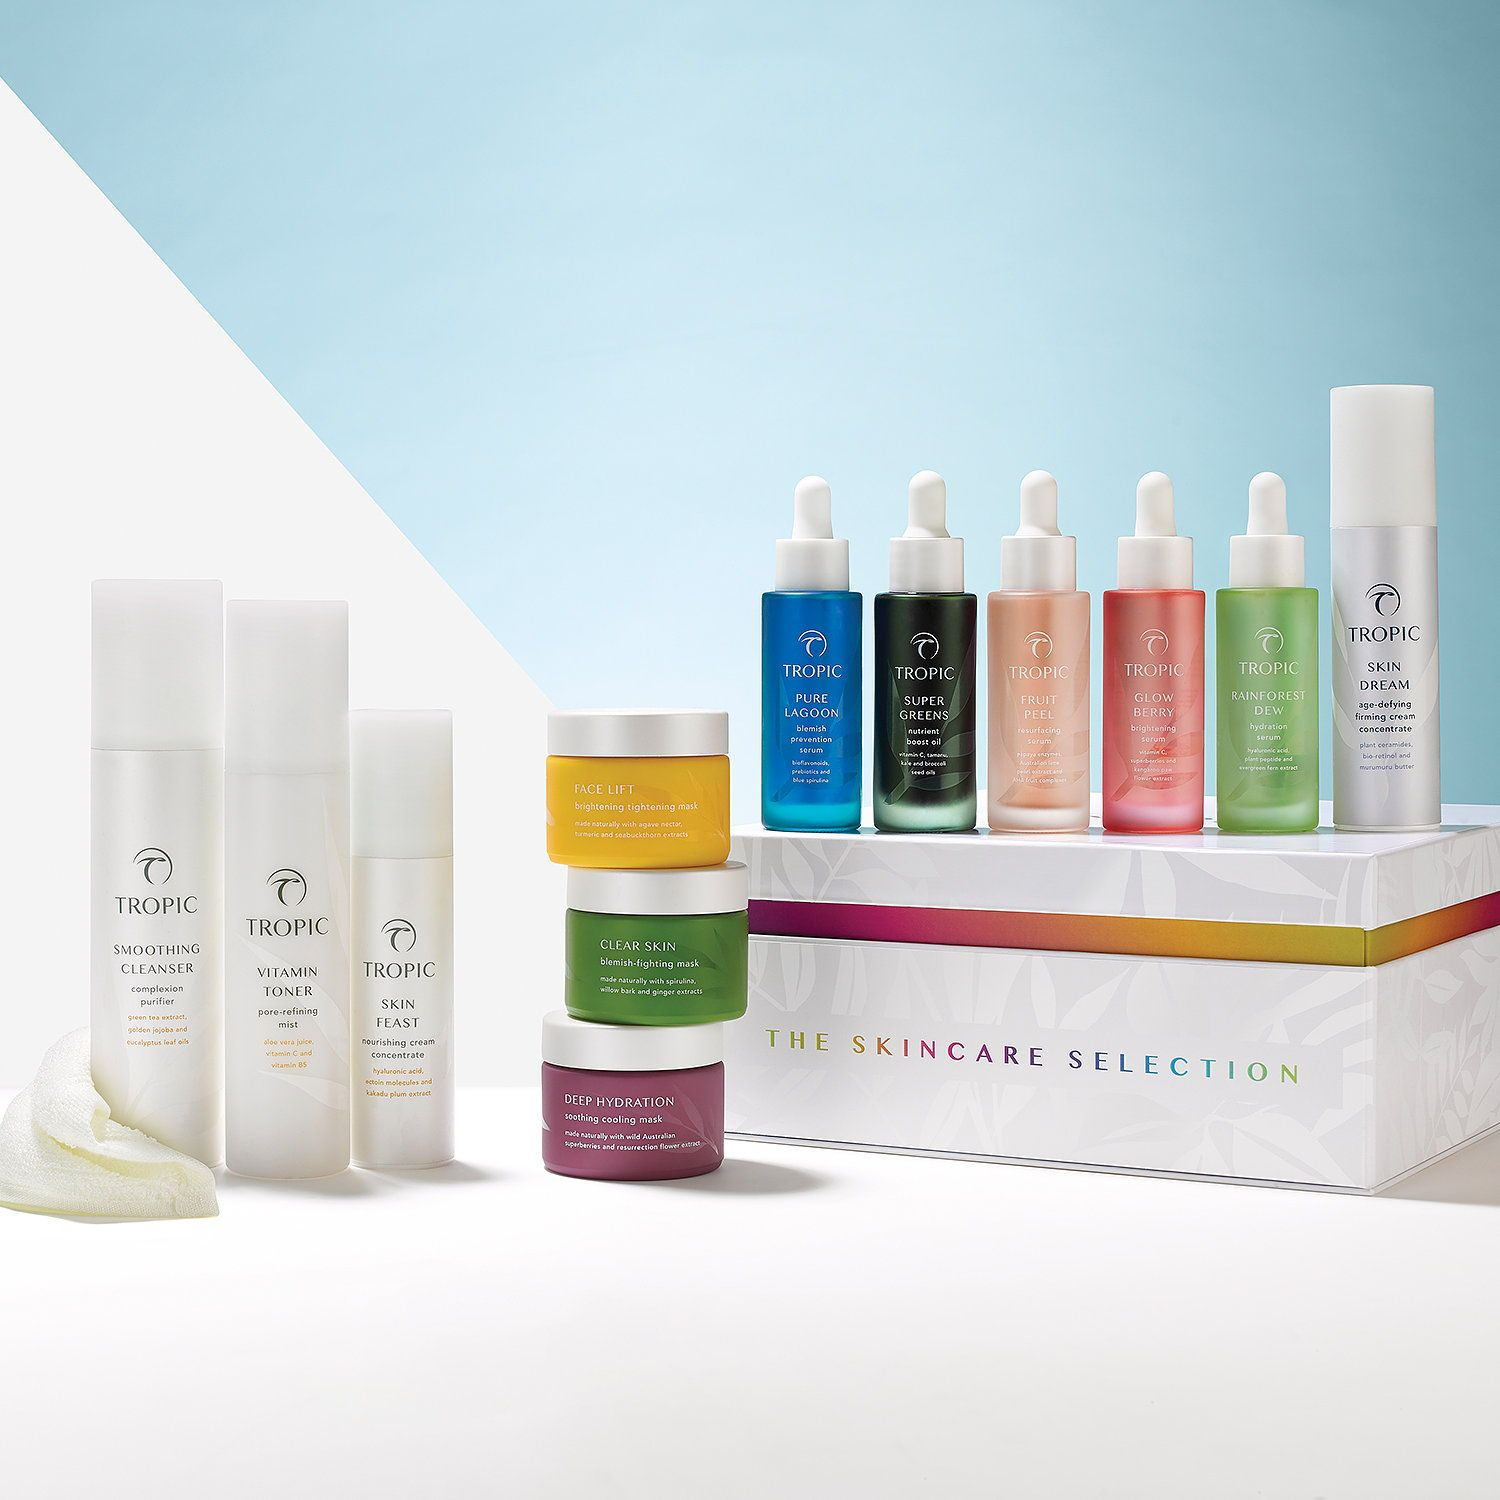 Build Your Own Skincare Selection By Tropic Choose One Of Three Carefully Curated Collections To Enjoy Our Best Tropic Skincare Skin Care Perfect Skin Routine